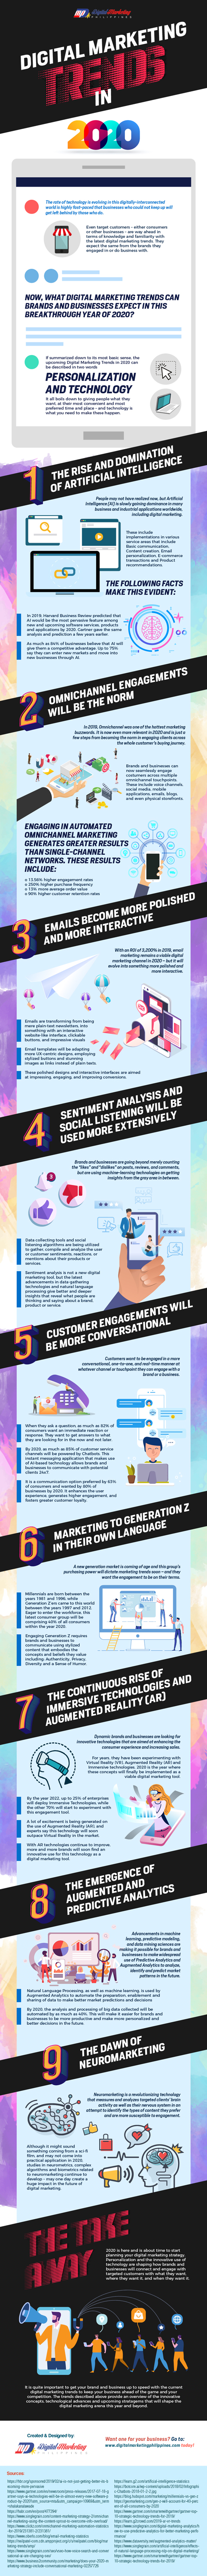 Digital Marketing Trends in 2020 Infographic